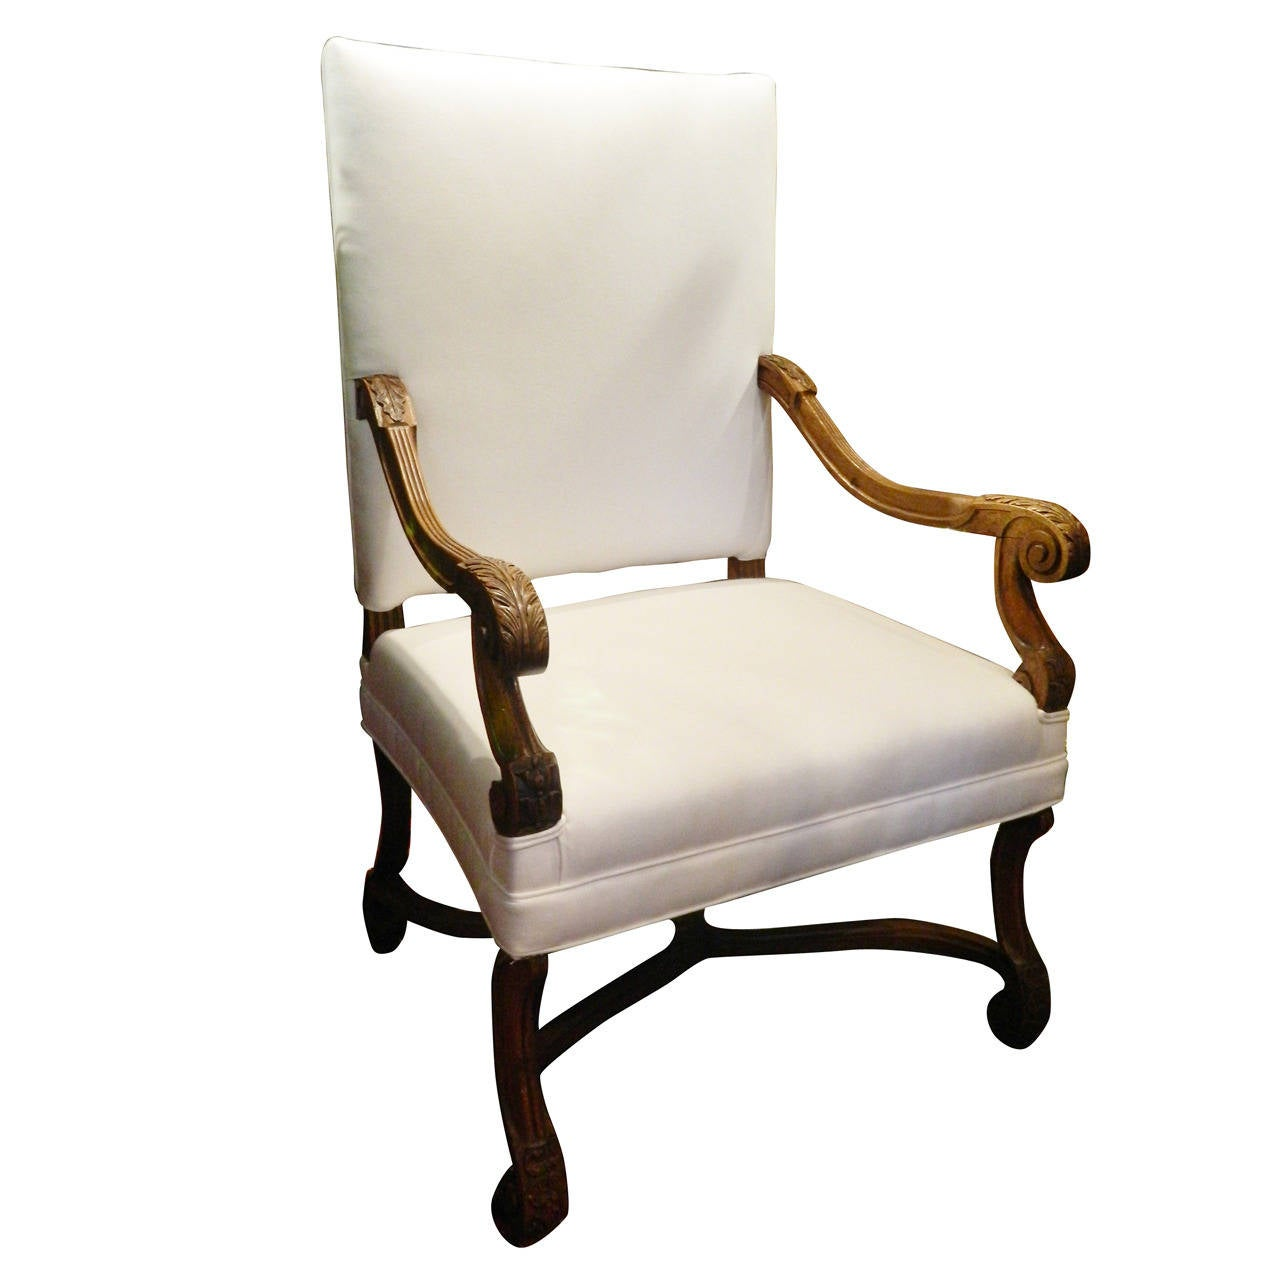 French Provincial Carved Walnut Armchair, 19th Century